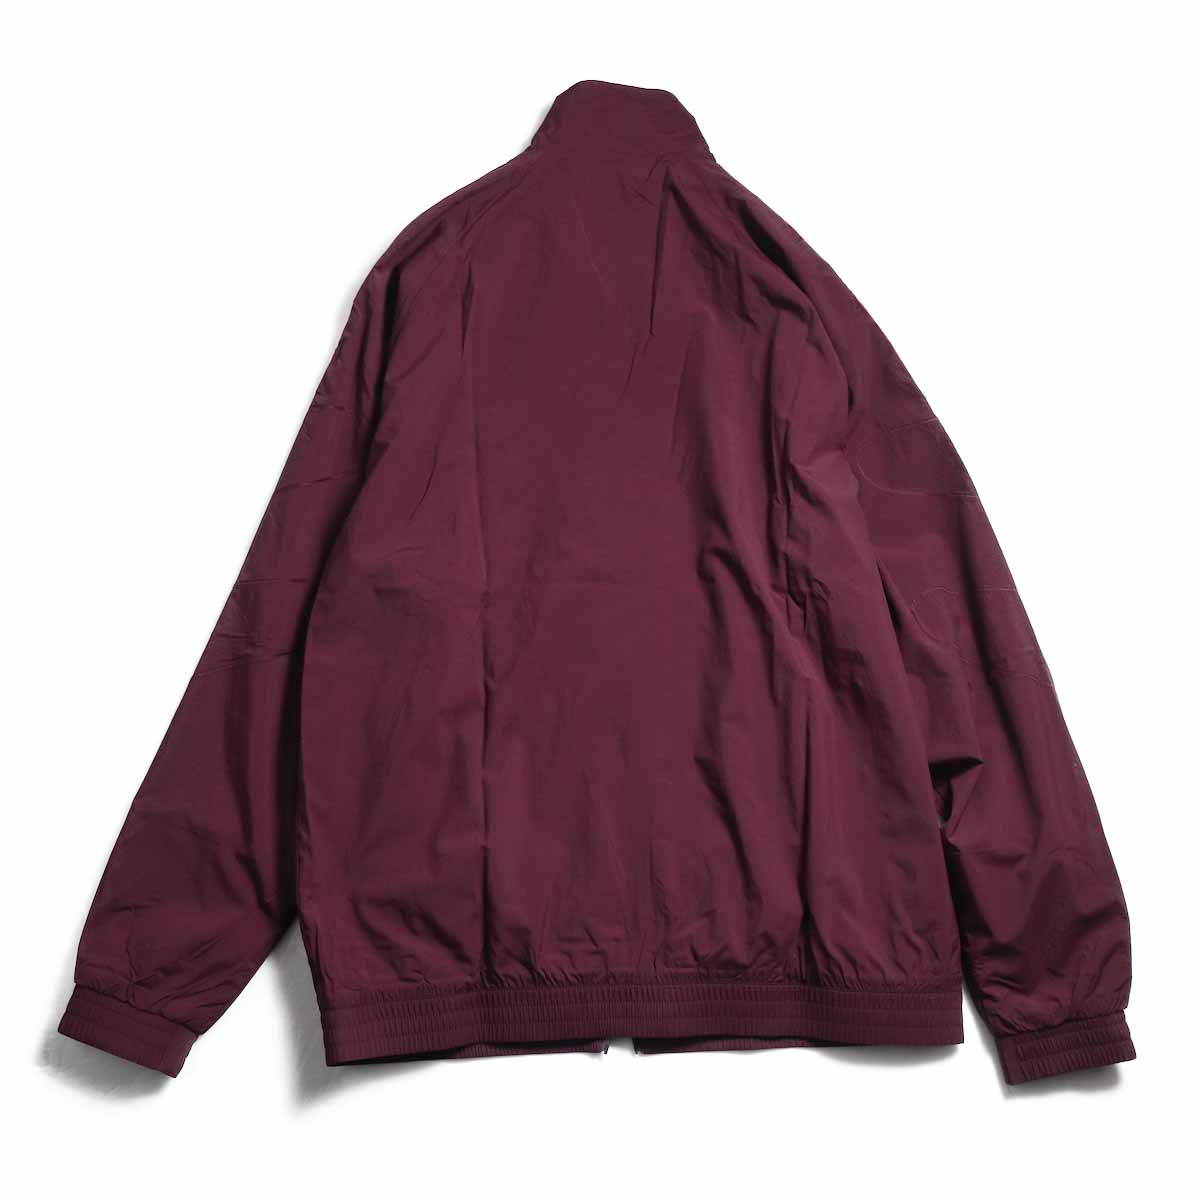 adidas originals / Flamestrike Woven Track Top -Maroon 背面